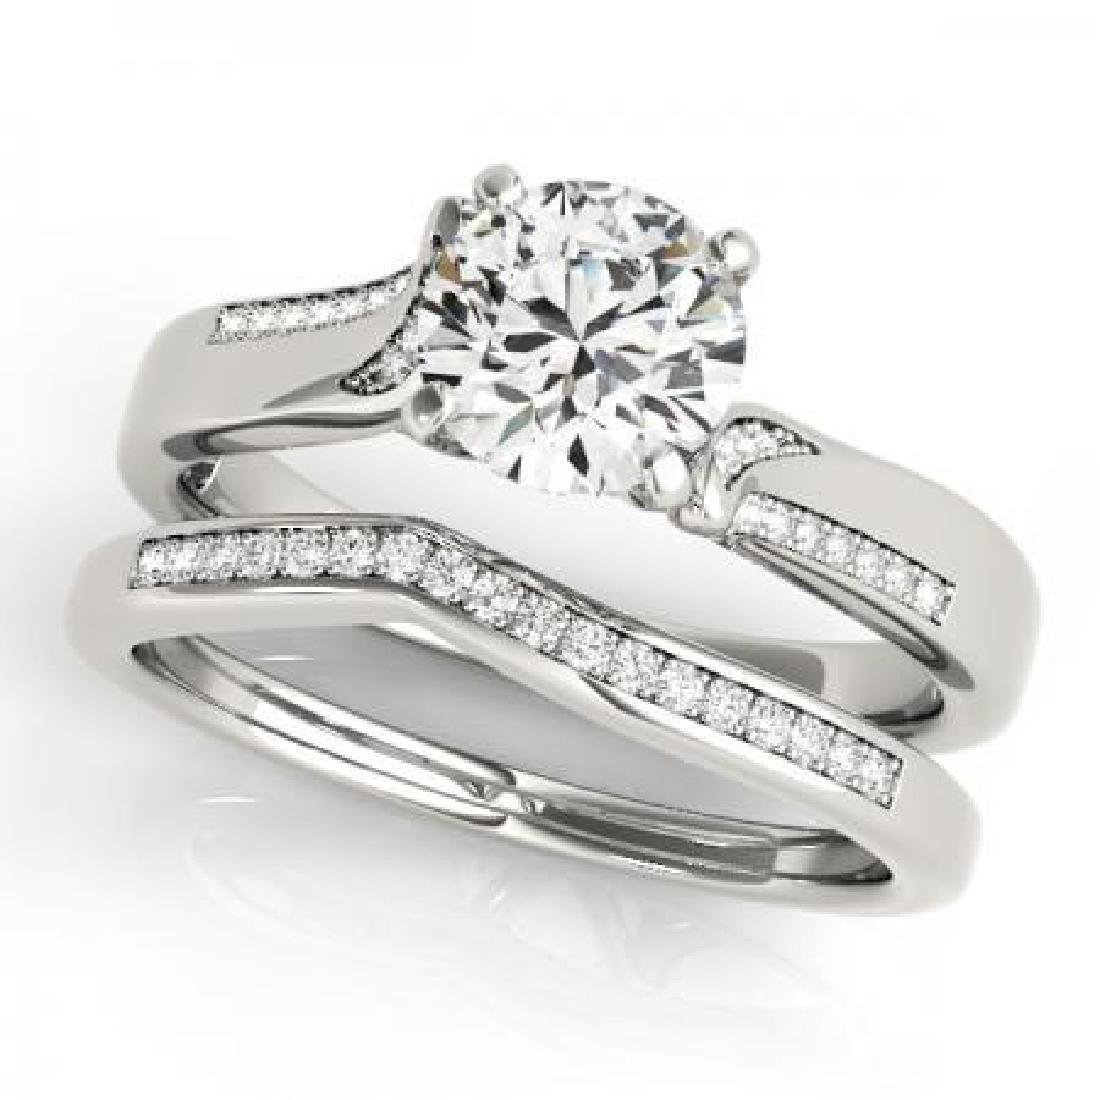 CERTIFIED 18KT WHITE GOLD 1.14 CT G-H/VS-SI1 DIAMOND BR